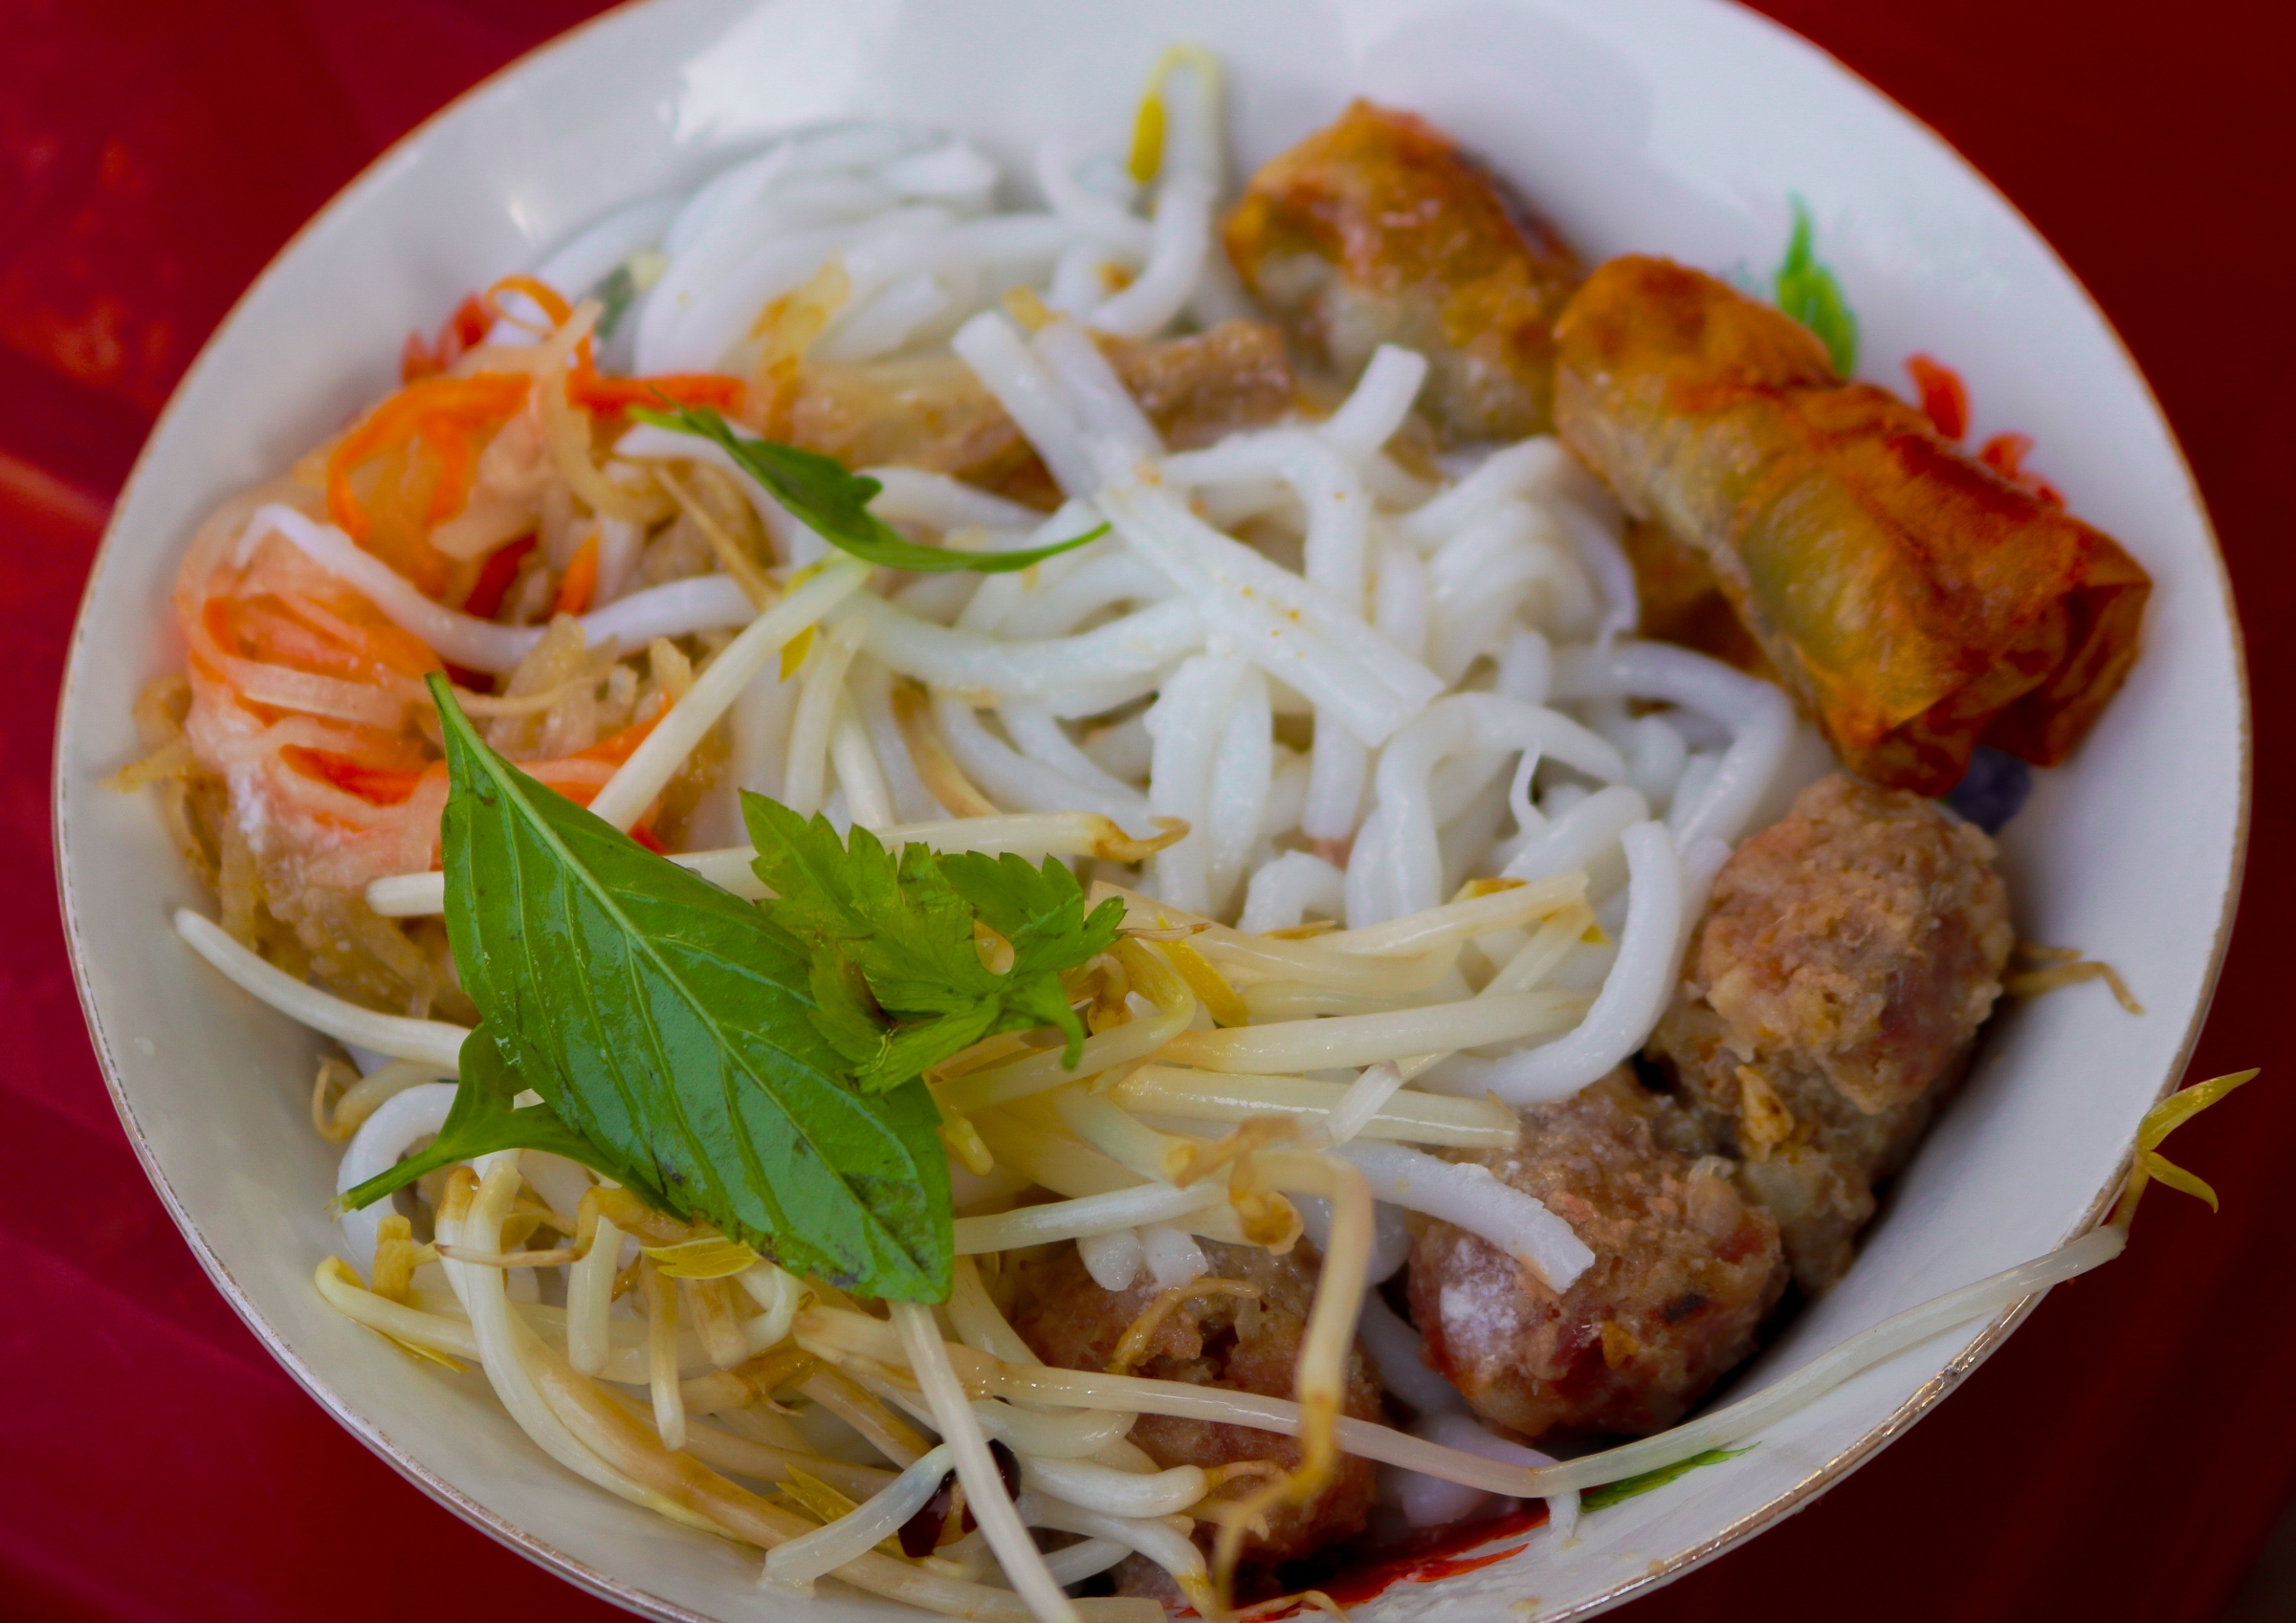 Banh tam noodles are different across different Mekong Delta provinces, depending on the type of rice available in the area and the noodle-making process. No one knows exactly the origin of the dish but many people in the Mekong Delta believed that it originated from Bac Lieu Province. The main ingredients of this dish are thick noodles made of rice flour and tapioca flour, shredded pork skin, herbs, coconut cream and sweet fish sauce.